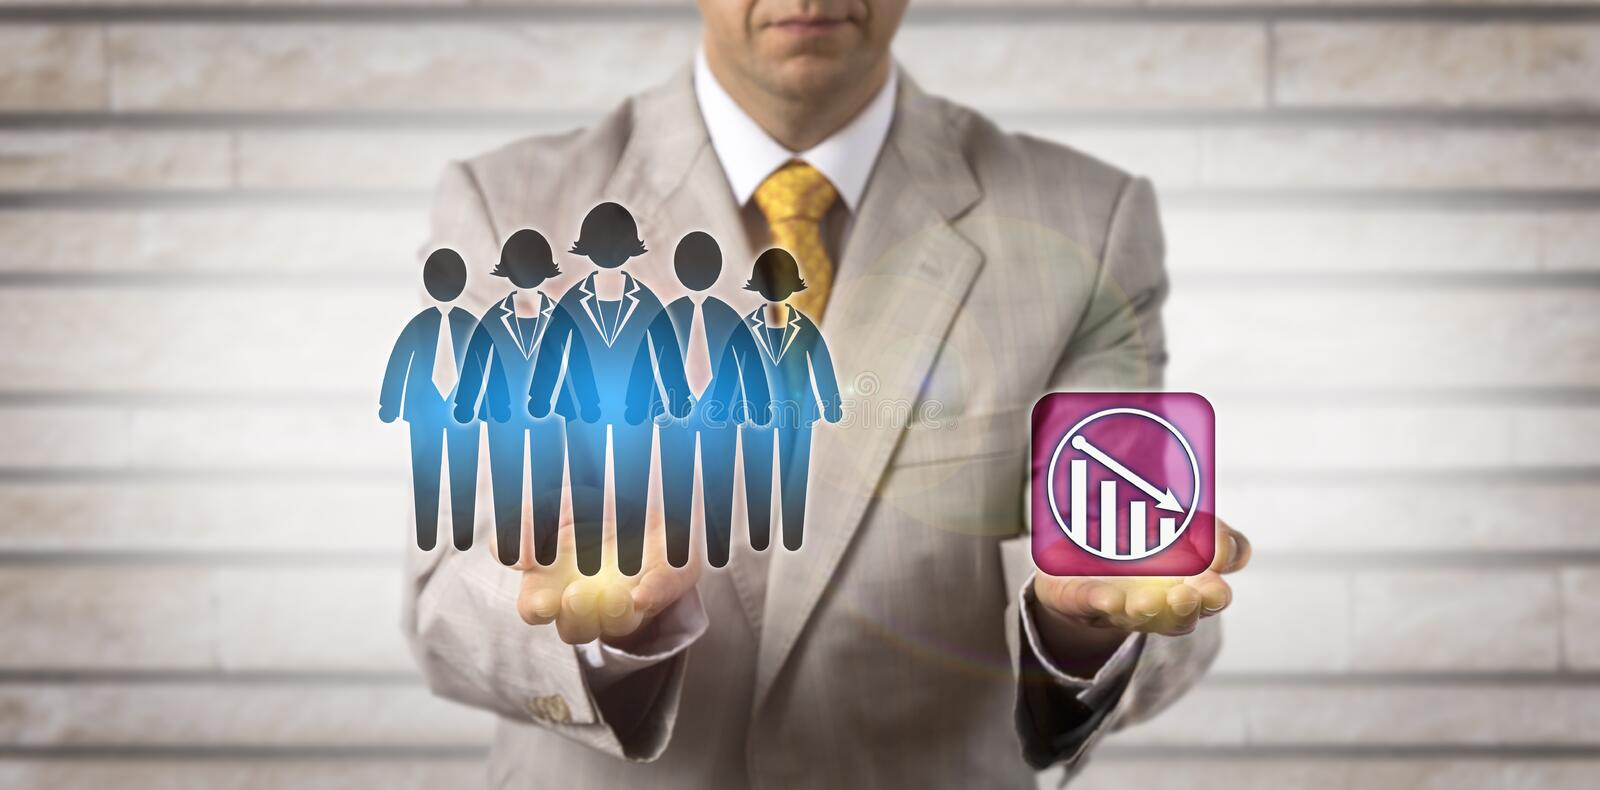 Manager Projecting Downward Trend For Work Team. Unrecognizable manager projecting downward trend for a work team. Human resources management concept for royalty free stock photo